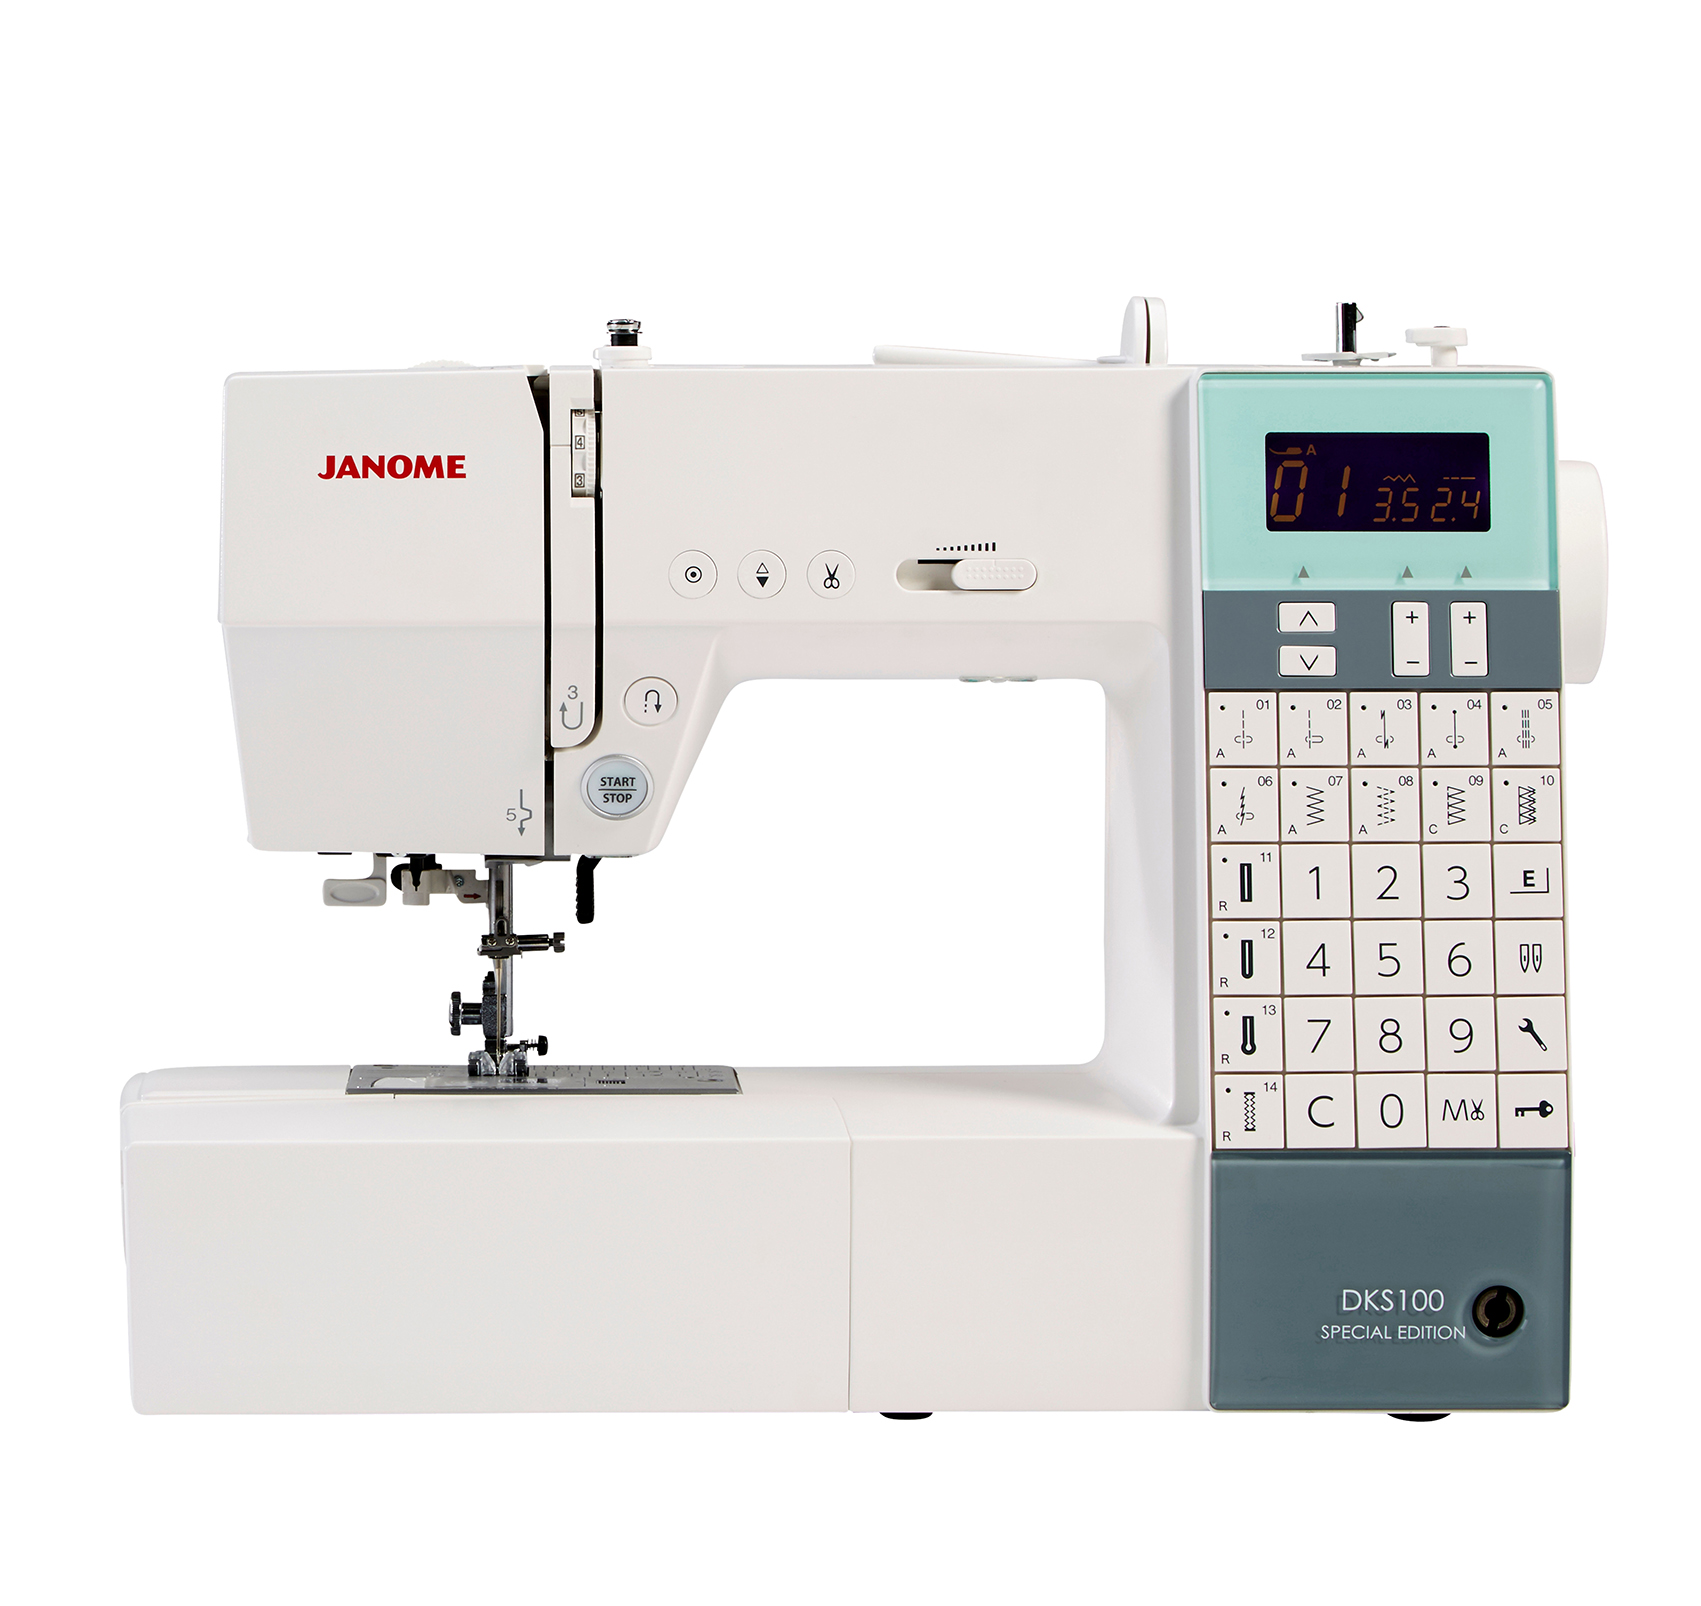 Janome DKS100 Special Edition